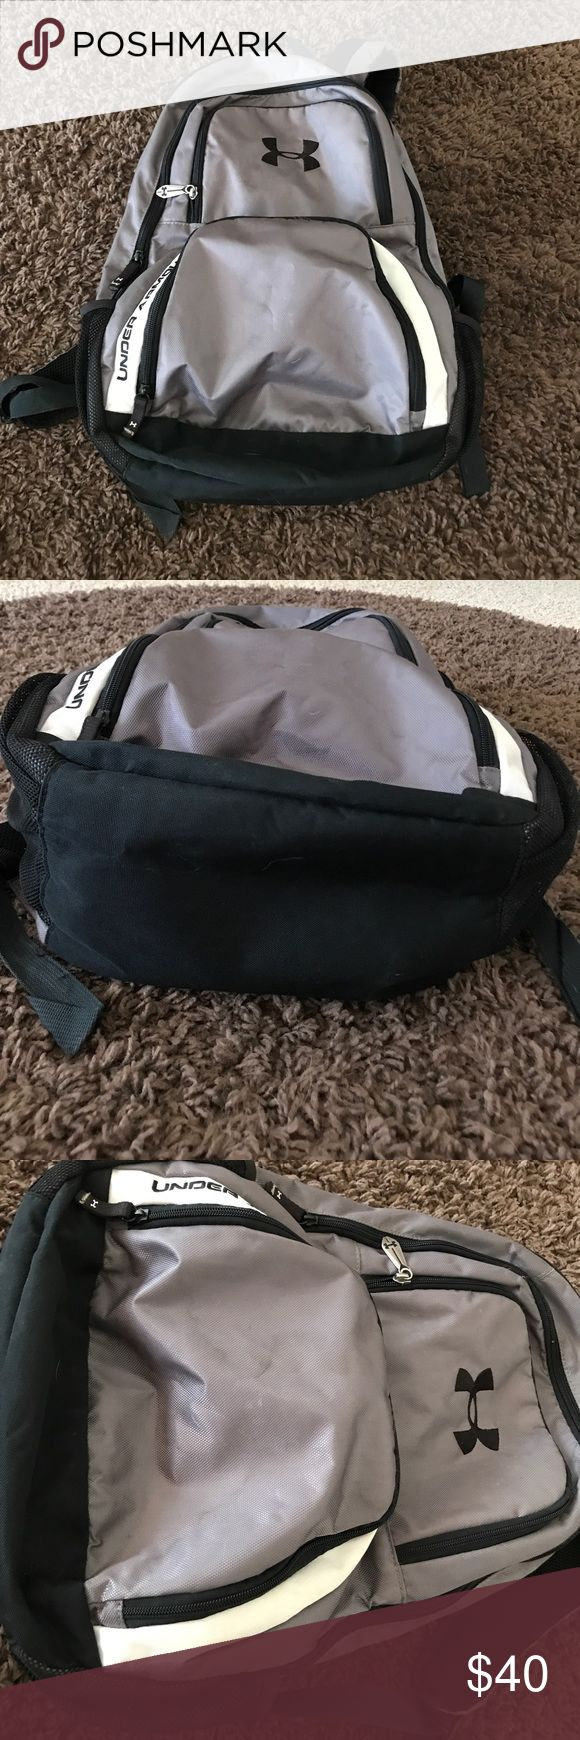 Under Armour black/gray backpack Used, but in great condition! Black and gray in color. All pictures show the normal wear the backpack has, no major stains, rips or tears. Inside of the backpack is perfect with no flaws. Adjustable straps that are nicely padded. Under Armour Bags Backpacks